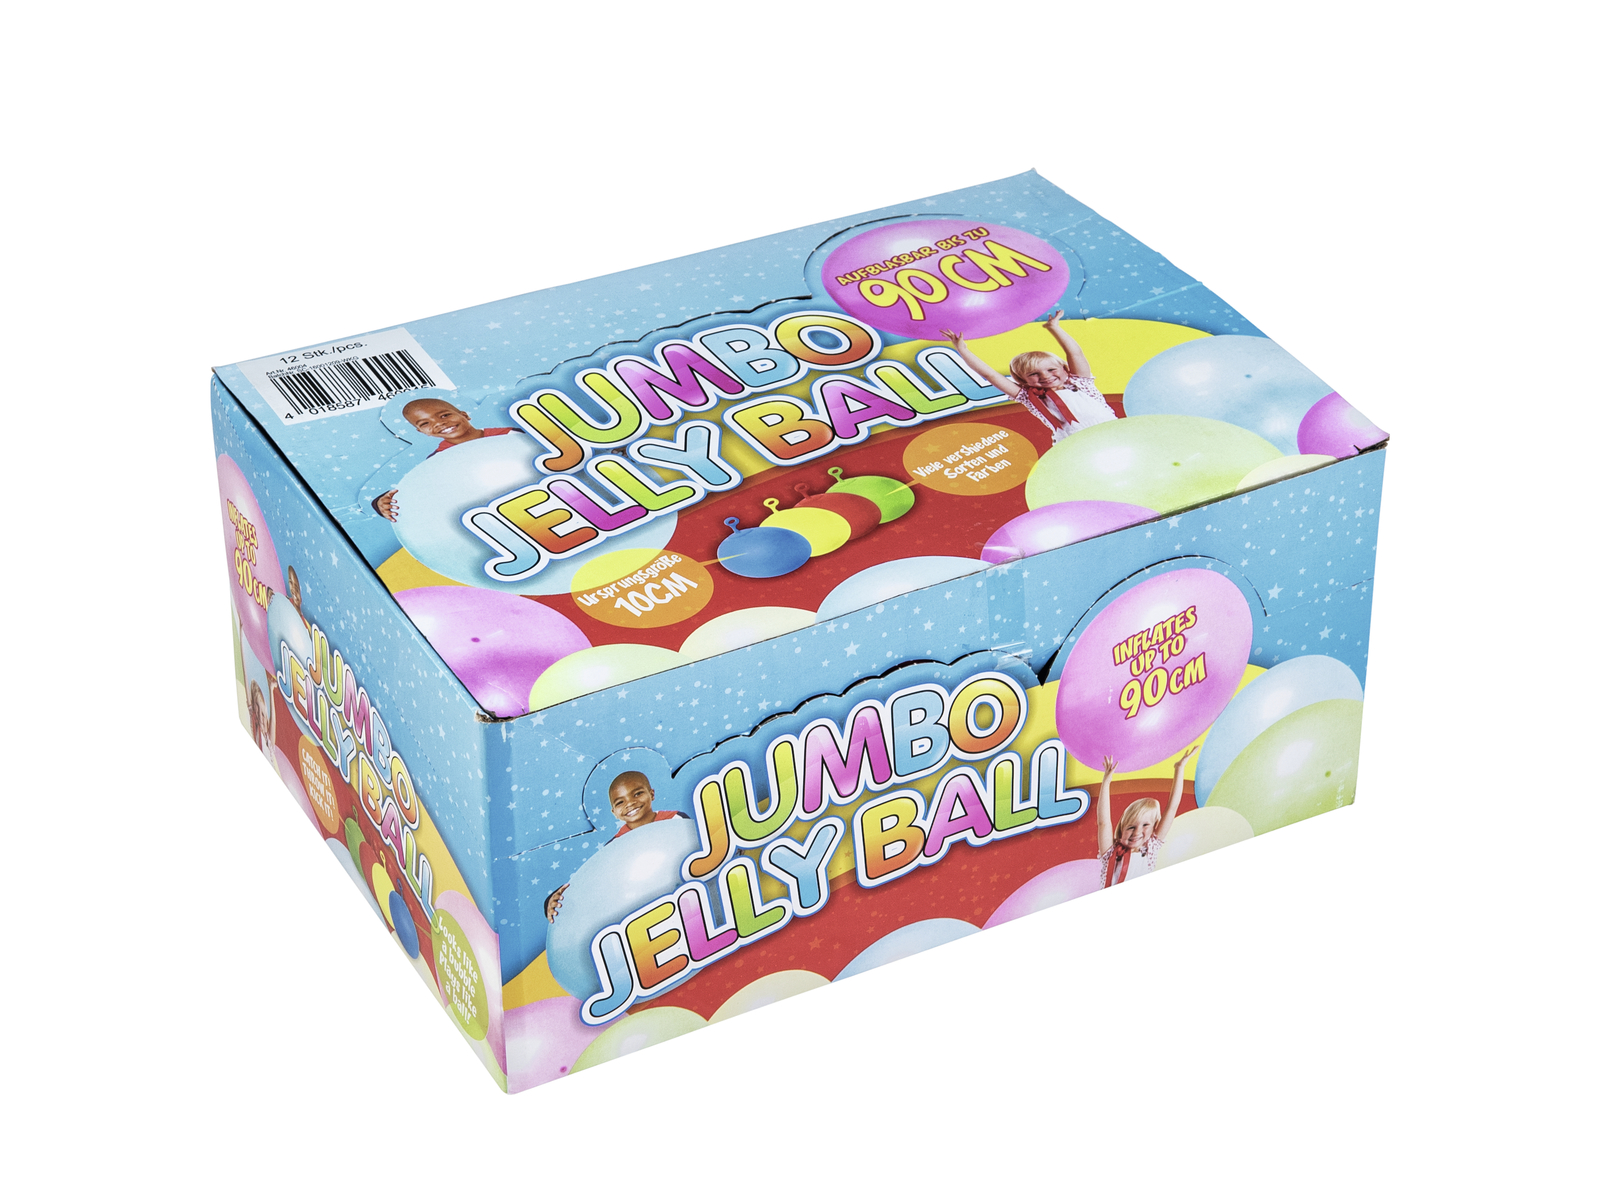 ACCESSORIO Jumbo Jelly Ball, 90cm, 12x